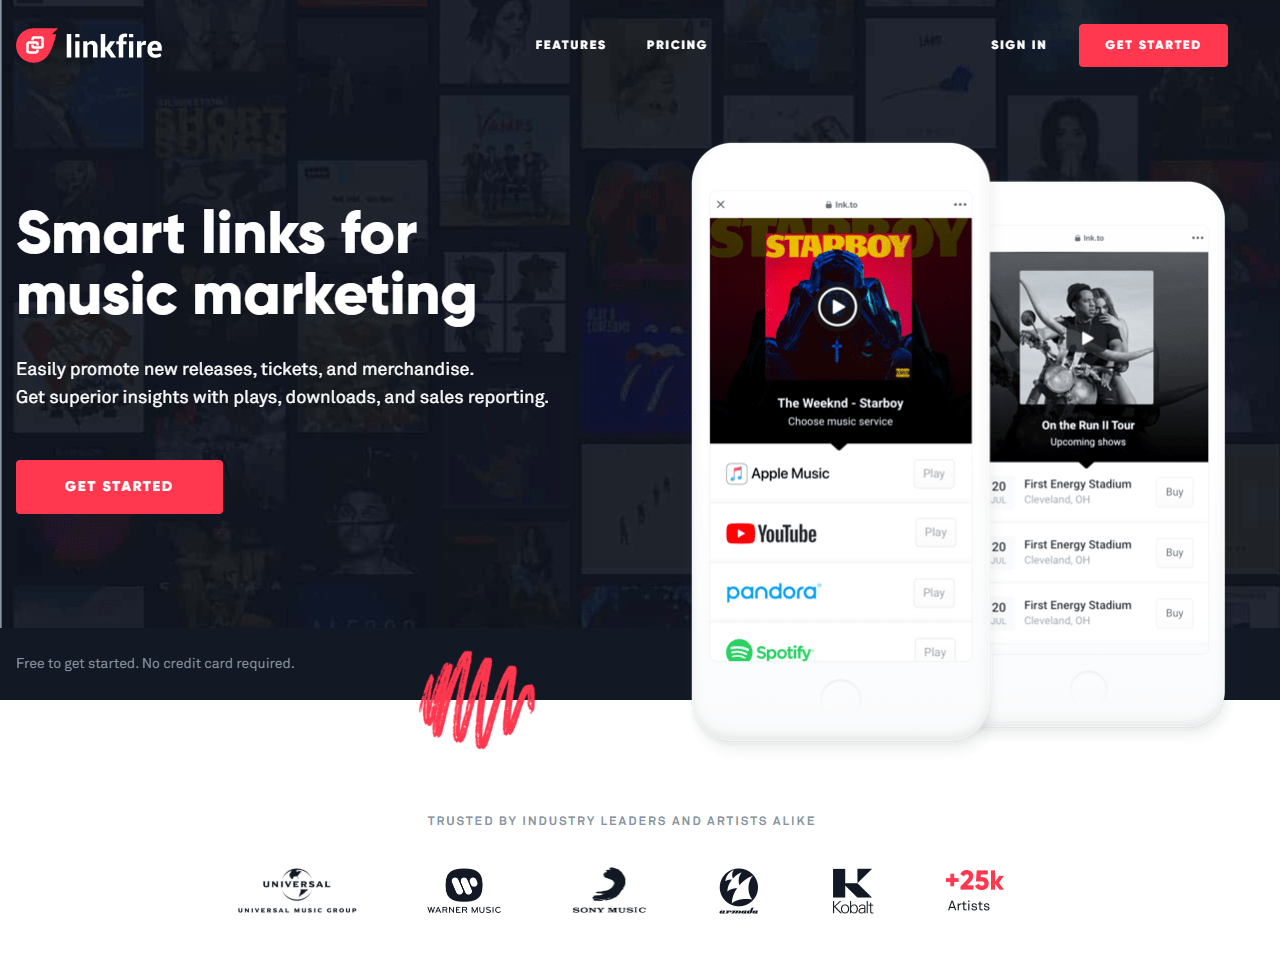 Smart links for music marketing artist marketing and tours promotion